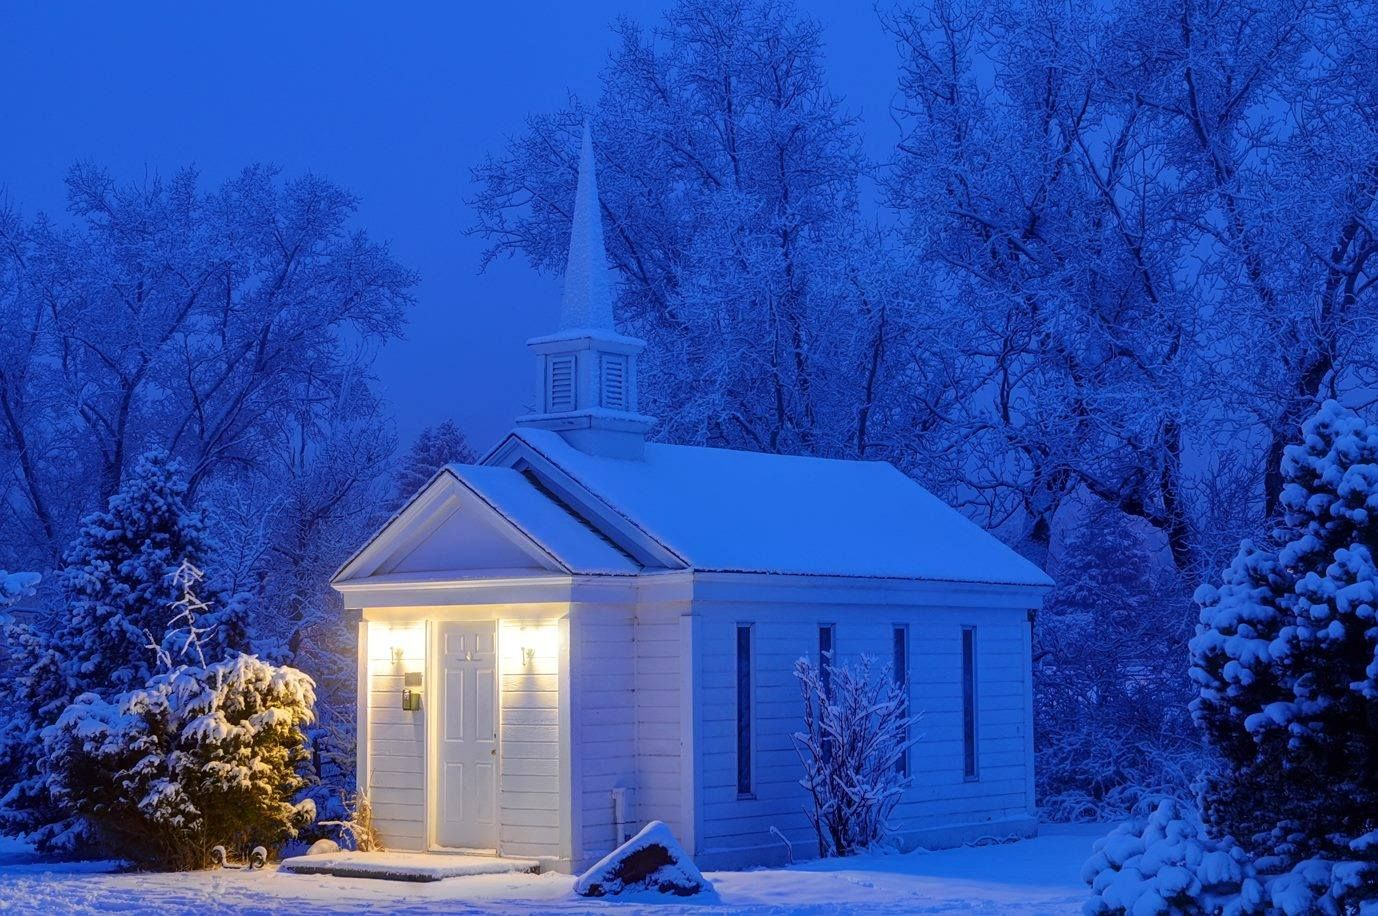 american mothers chapel at rock ledge ranch near garden of the